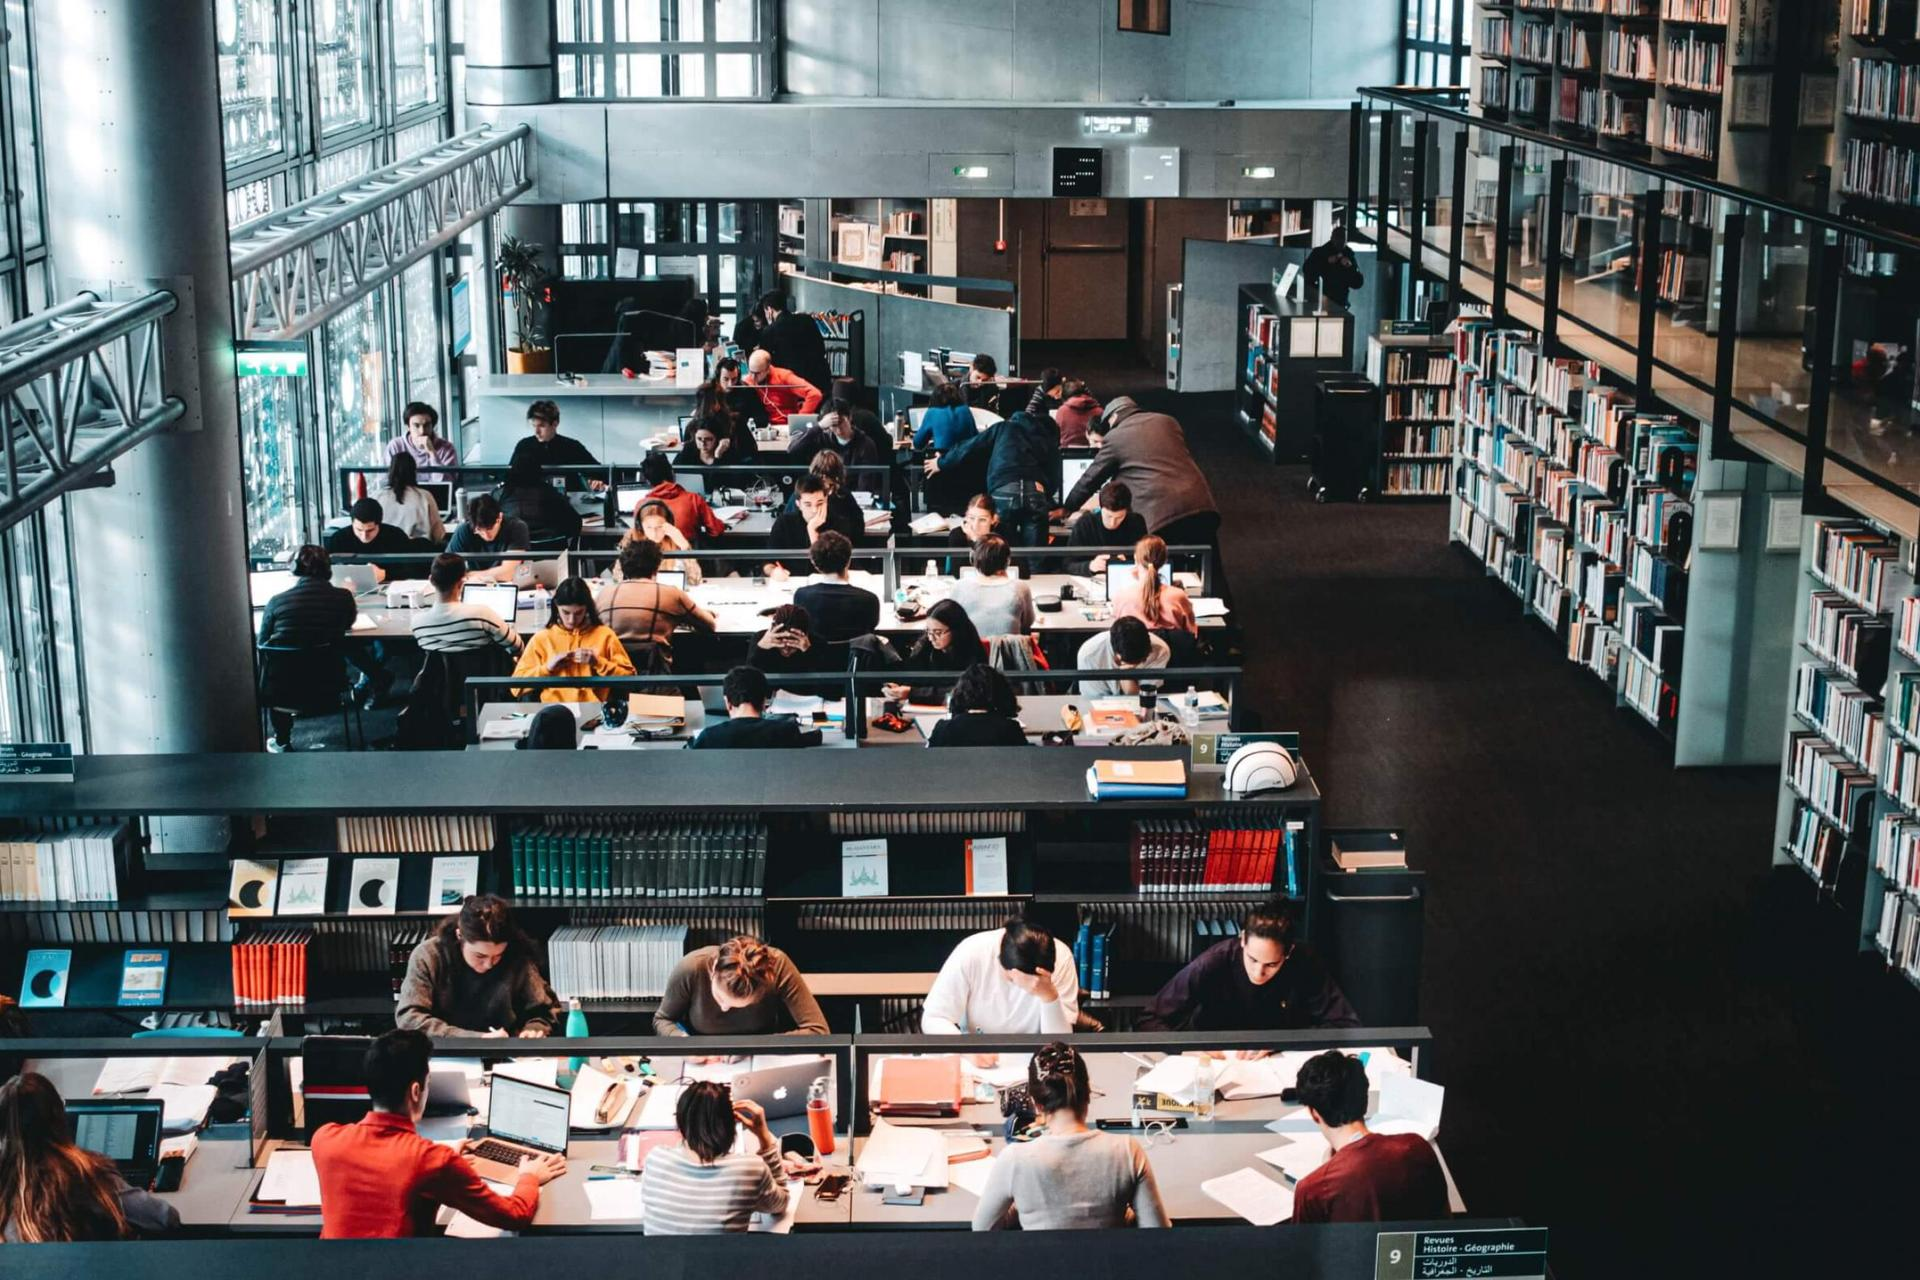 Students in university library